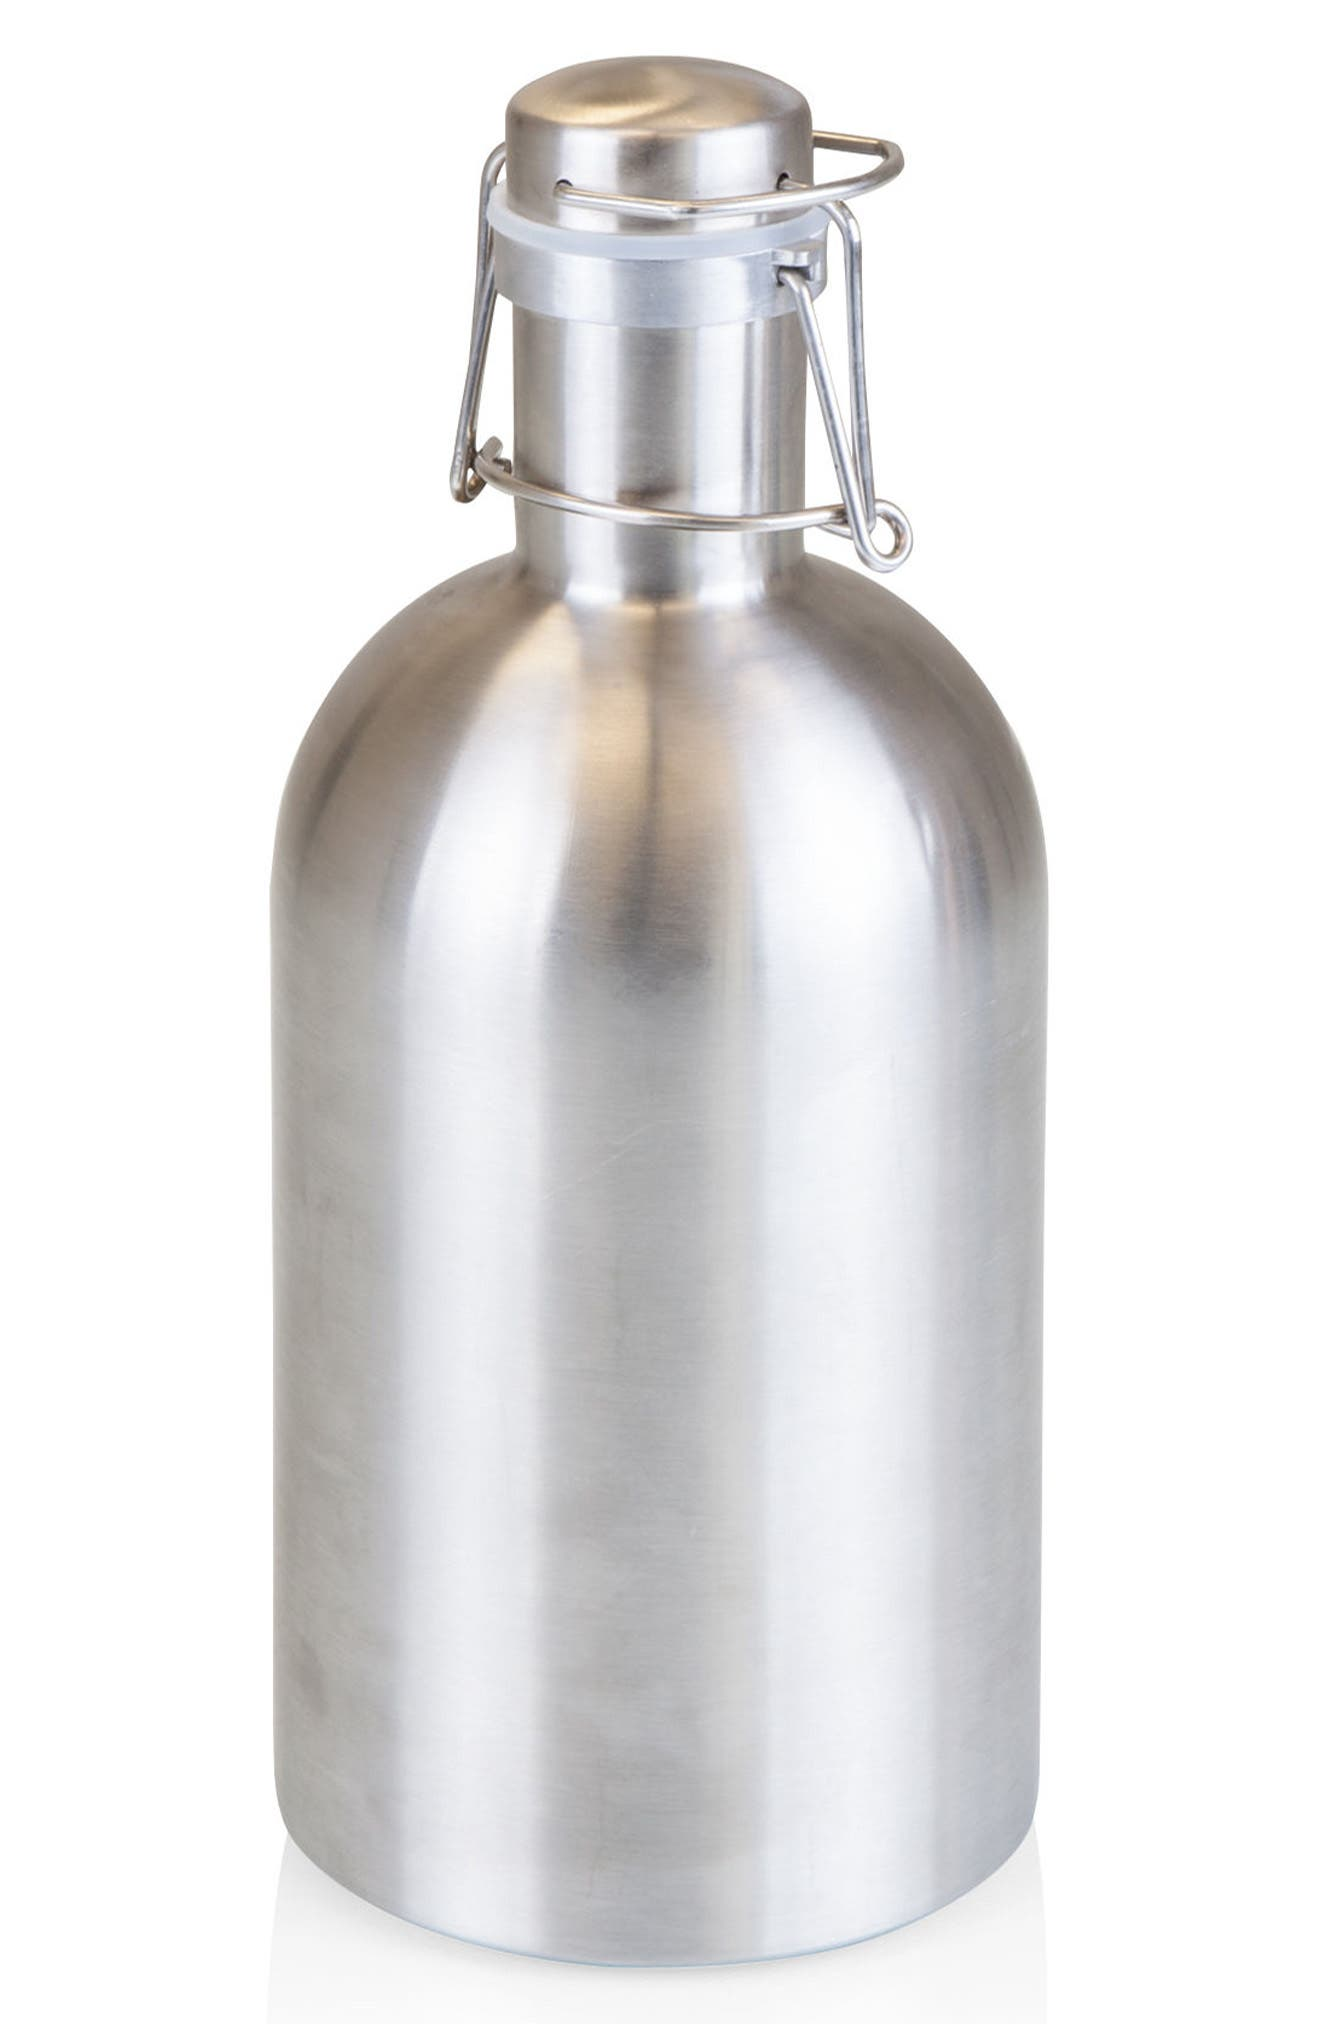 Alternate Image 1 Selected - Picnic Time 64-Ounce Stainless Steel Growler